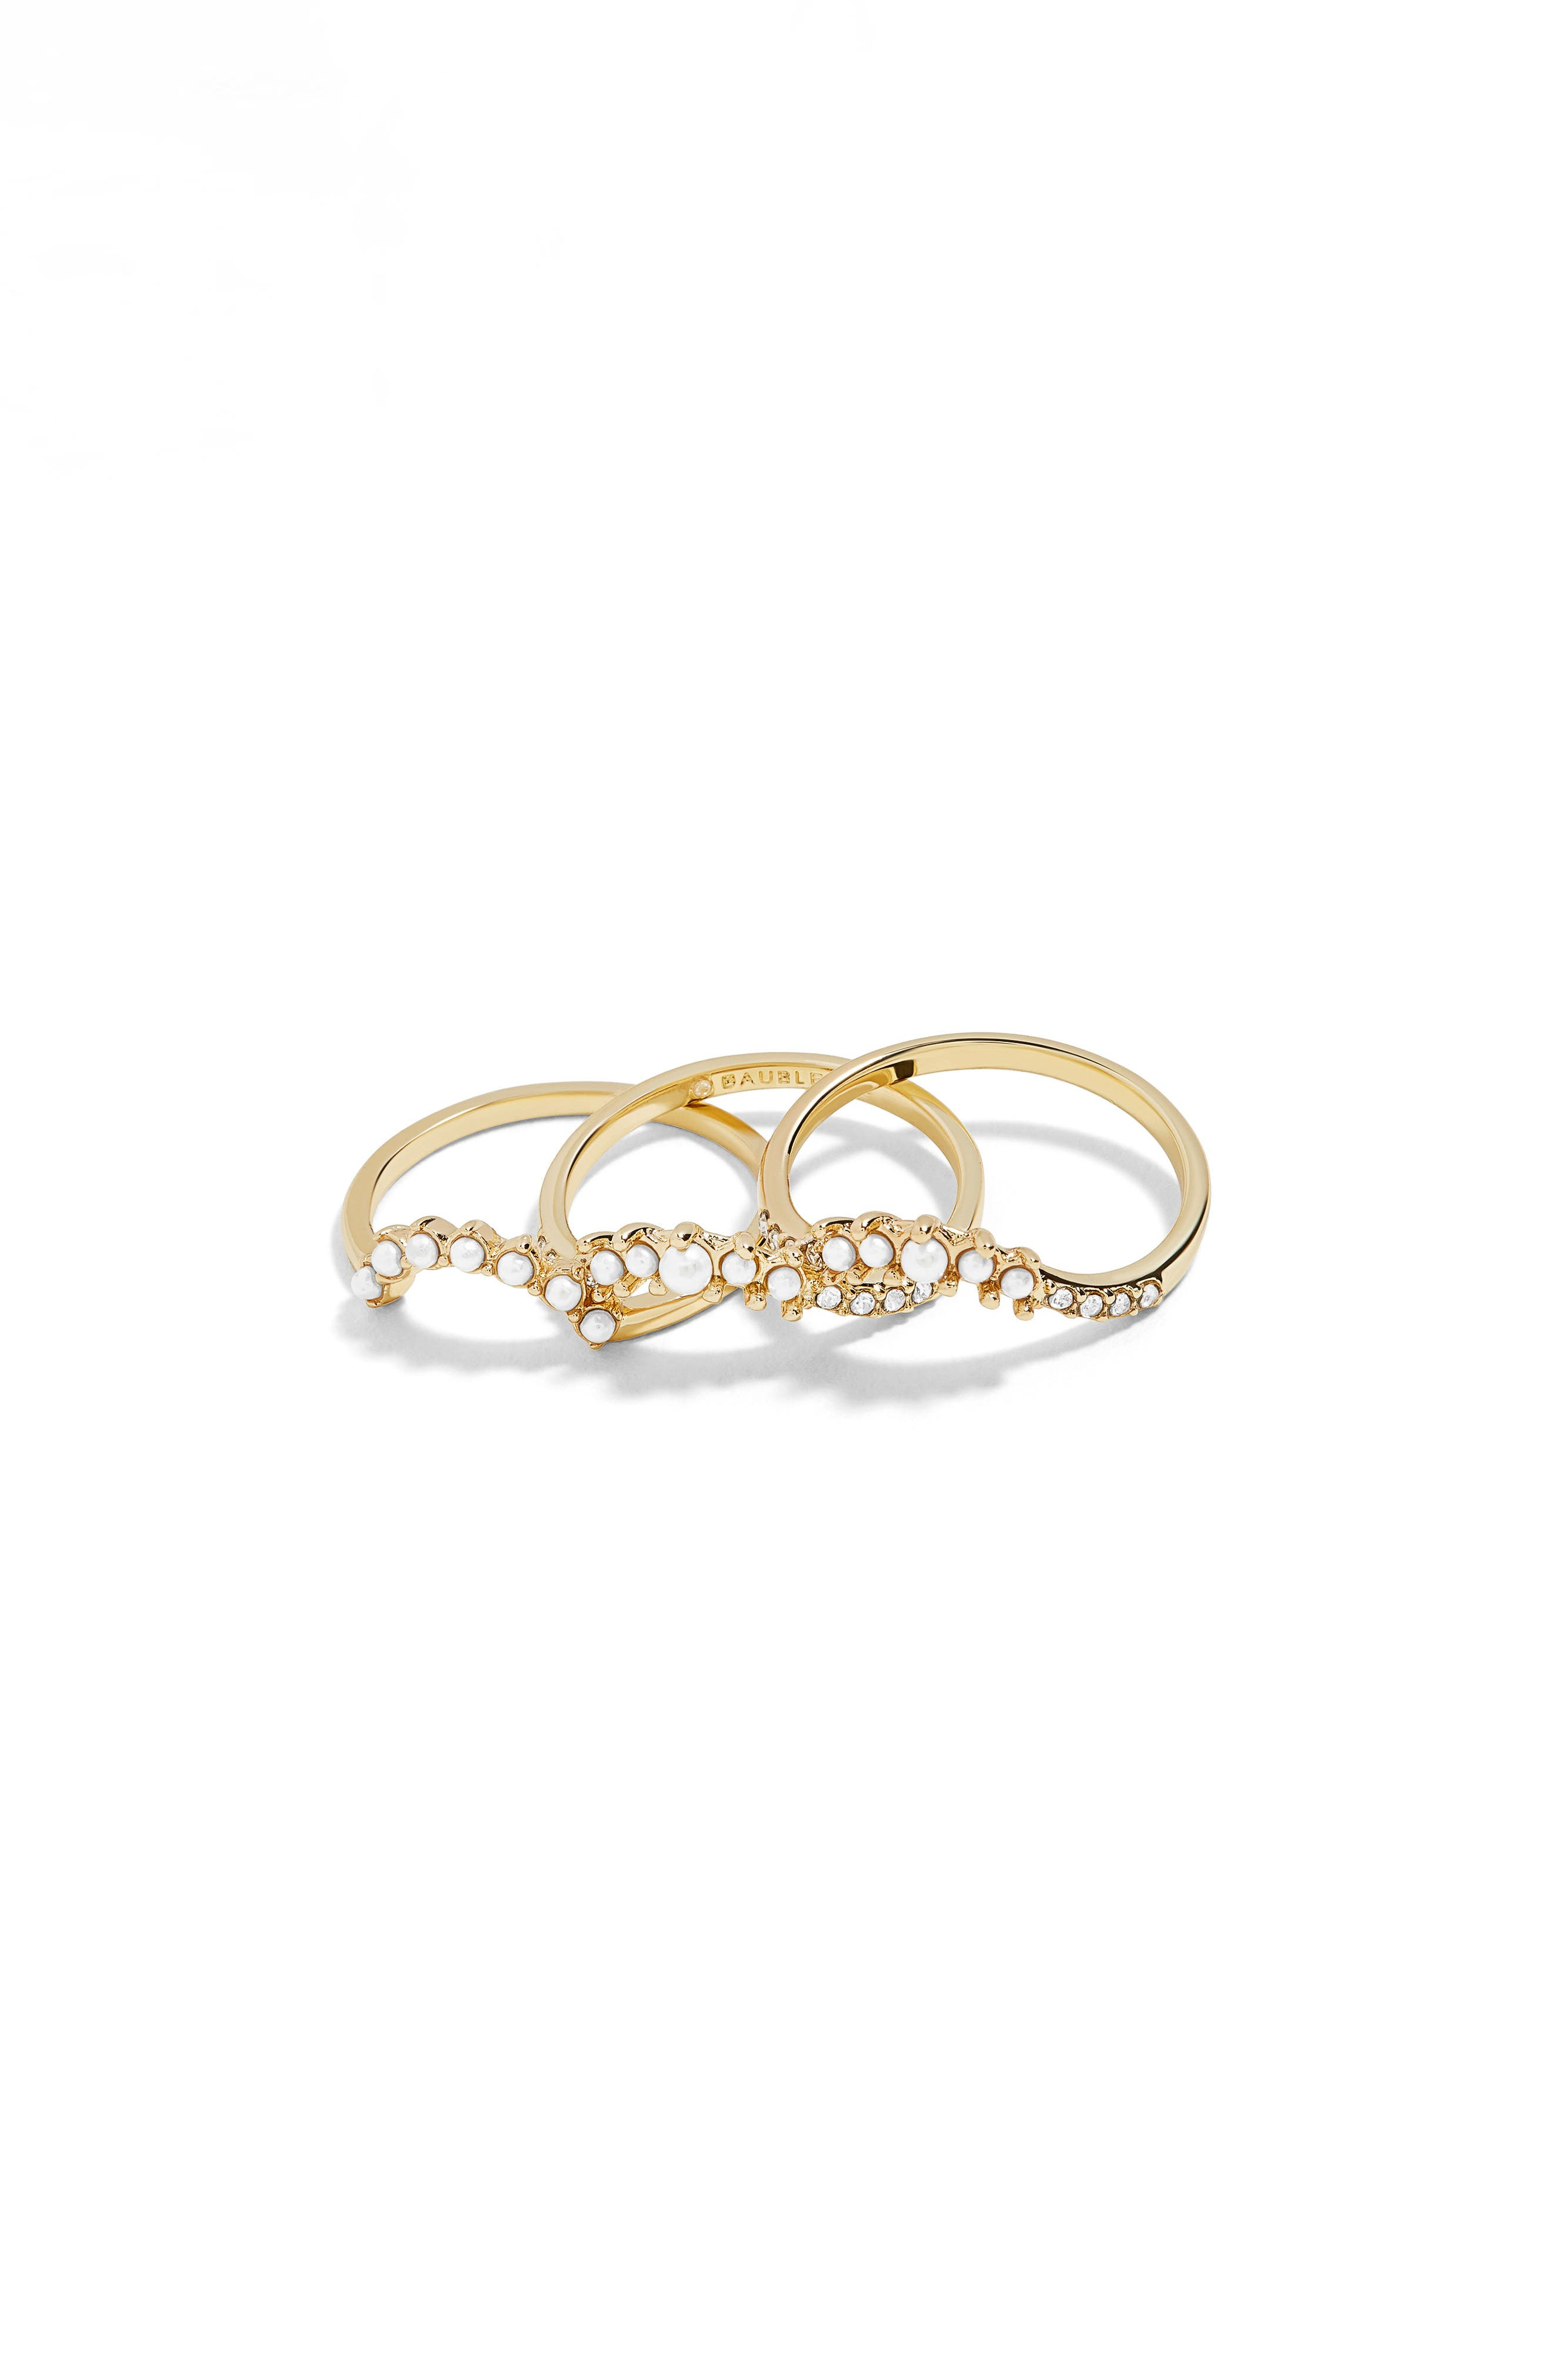 Dynasty Set of 3 Rings,                         Main,                         color, GOLD